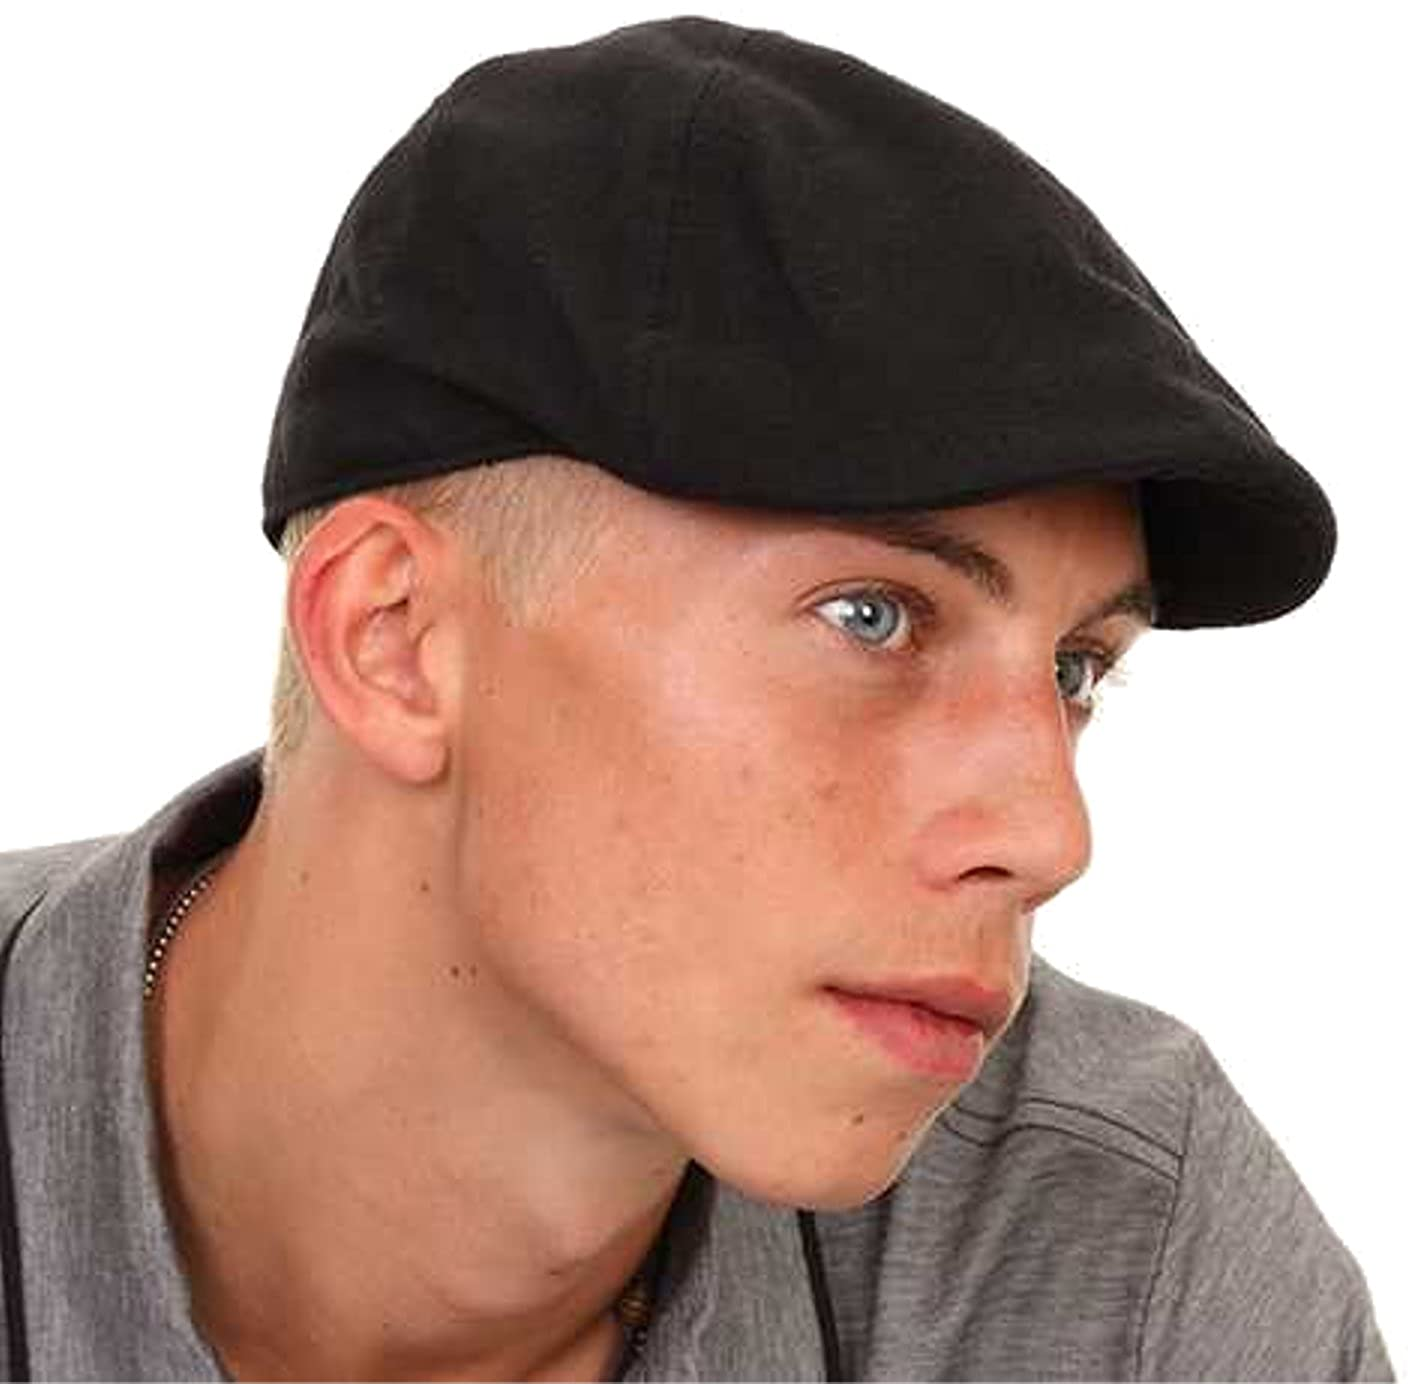 MENS BOYS BLACK FLAT CAP WITH PREFORMED PEAK  Amazon.co.uk  Shoes   Bags 422f0b9f225